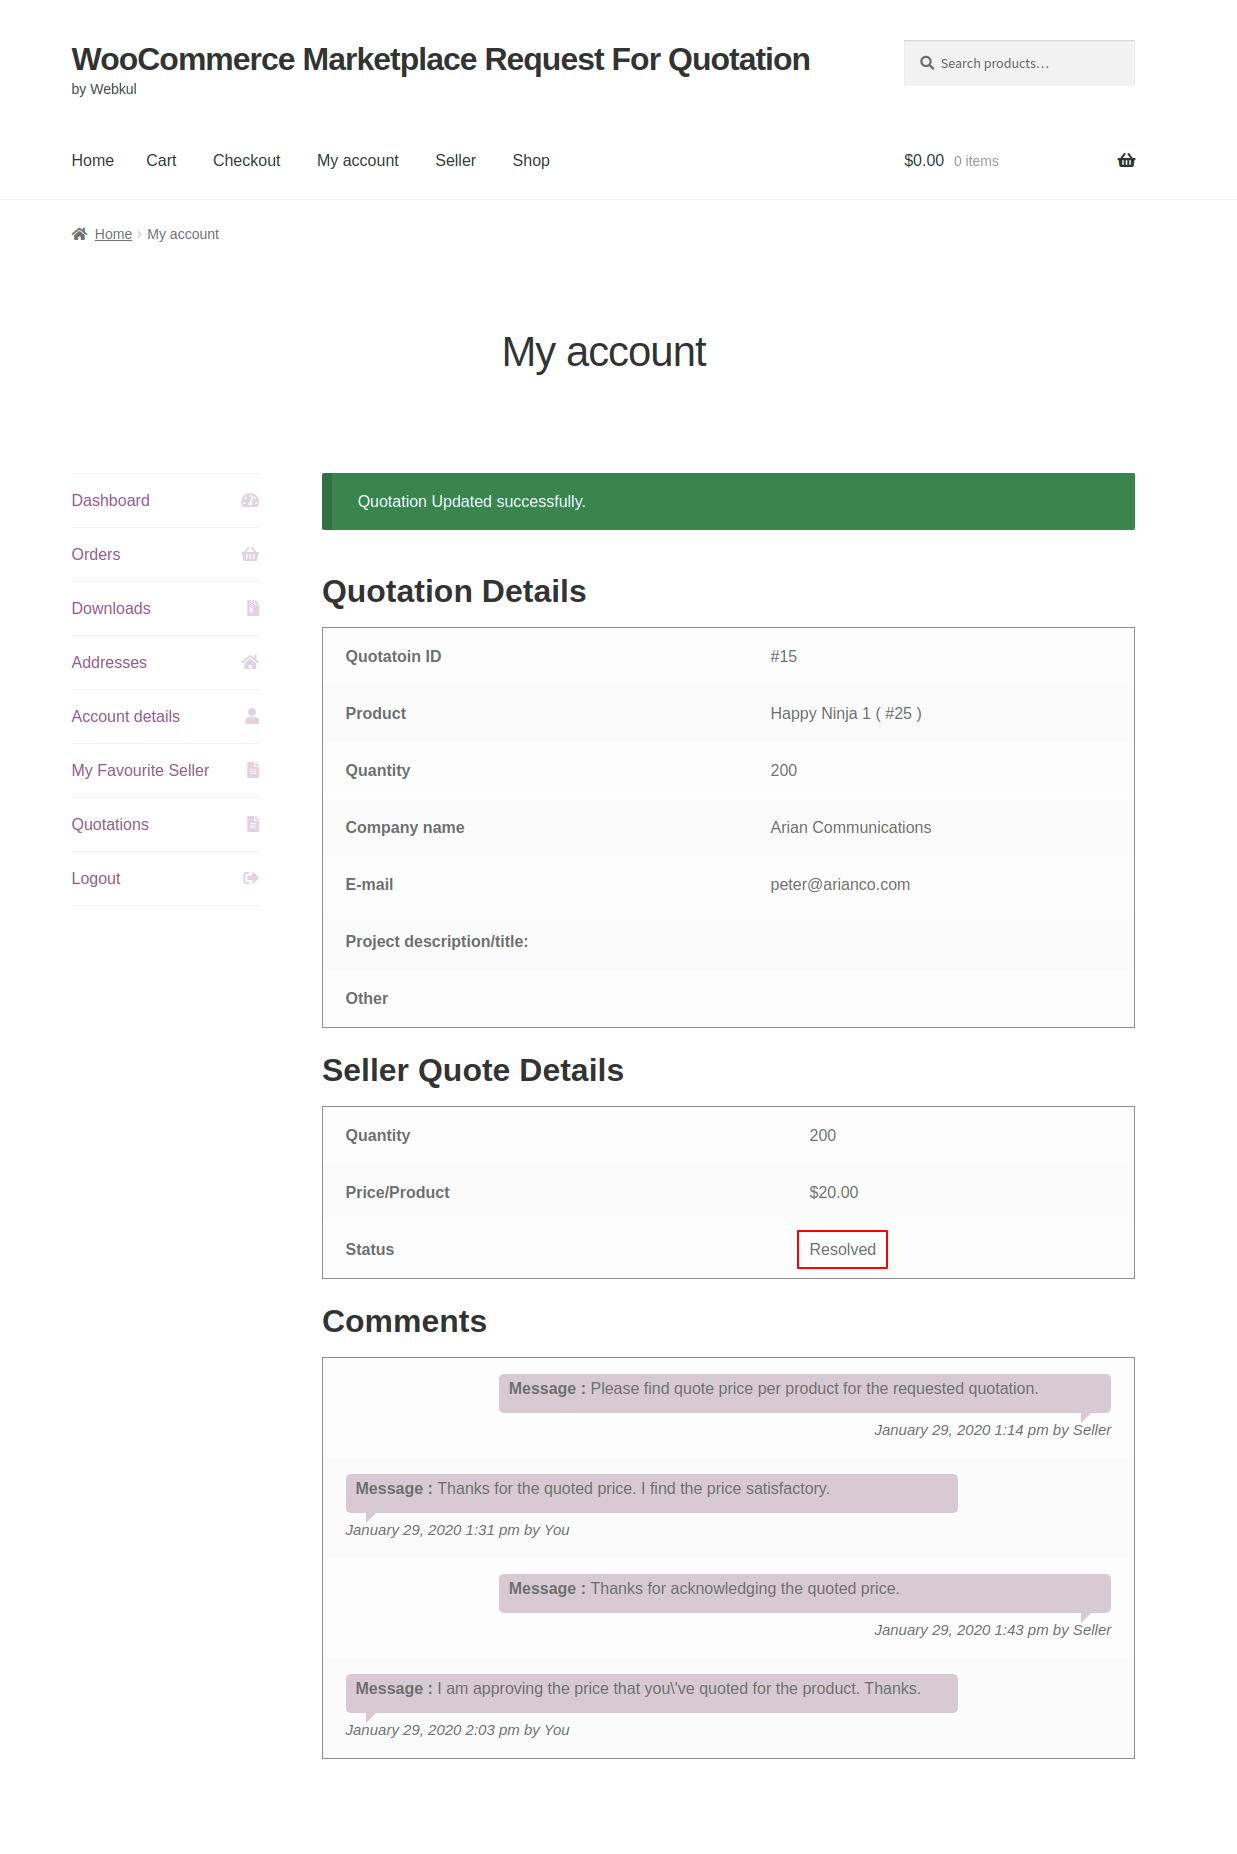 webkul-woocommerce-marketplace-request-for-quotation-customer-end-resolved-status